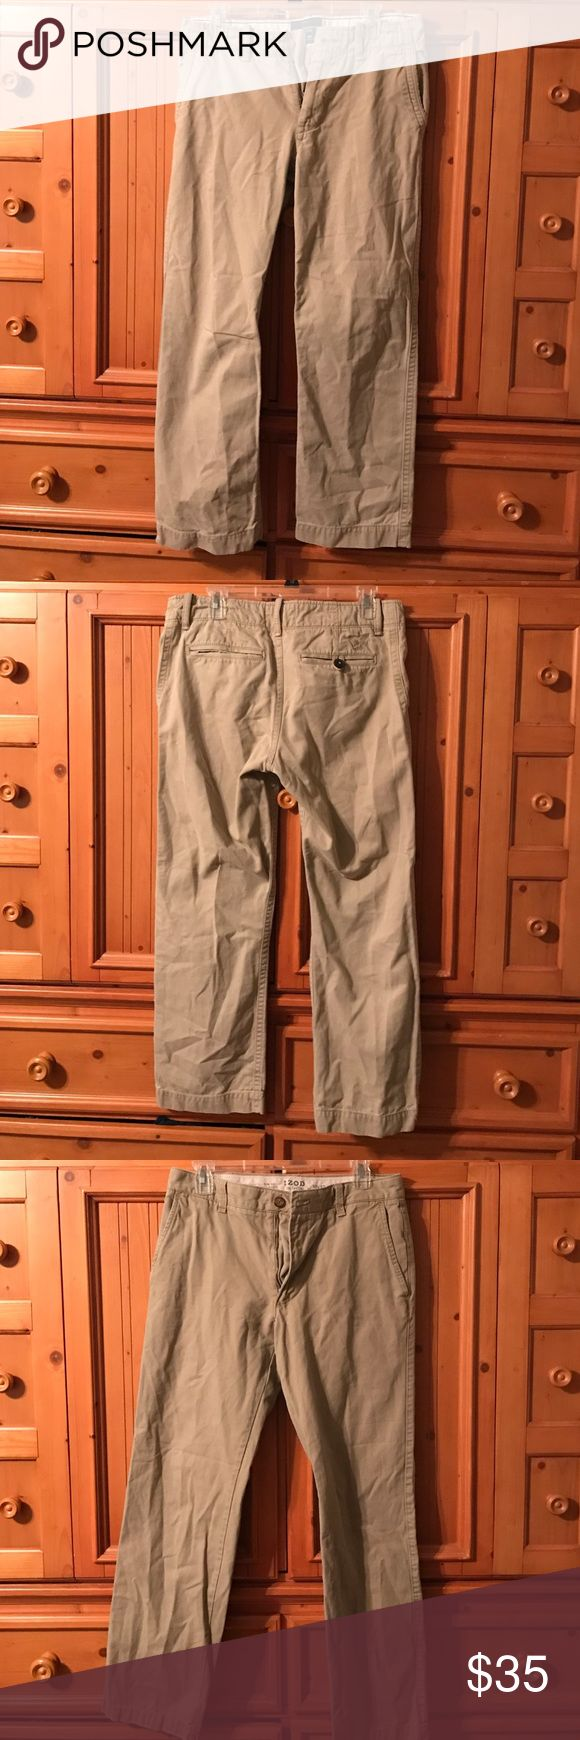 Pair of Men's kaki jeans IZOD and American eagle In wonderful condition. They've been worn only a few times. Sorry did not have time to iron,but will iron before bought. American Eagle Outfitters Pants Cargo